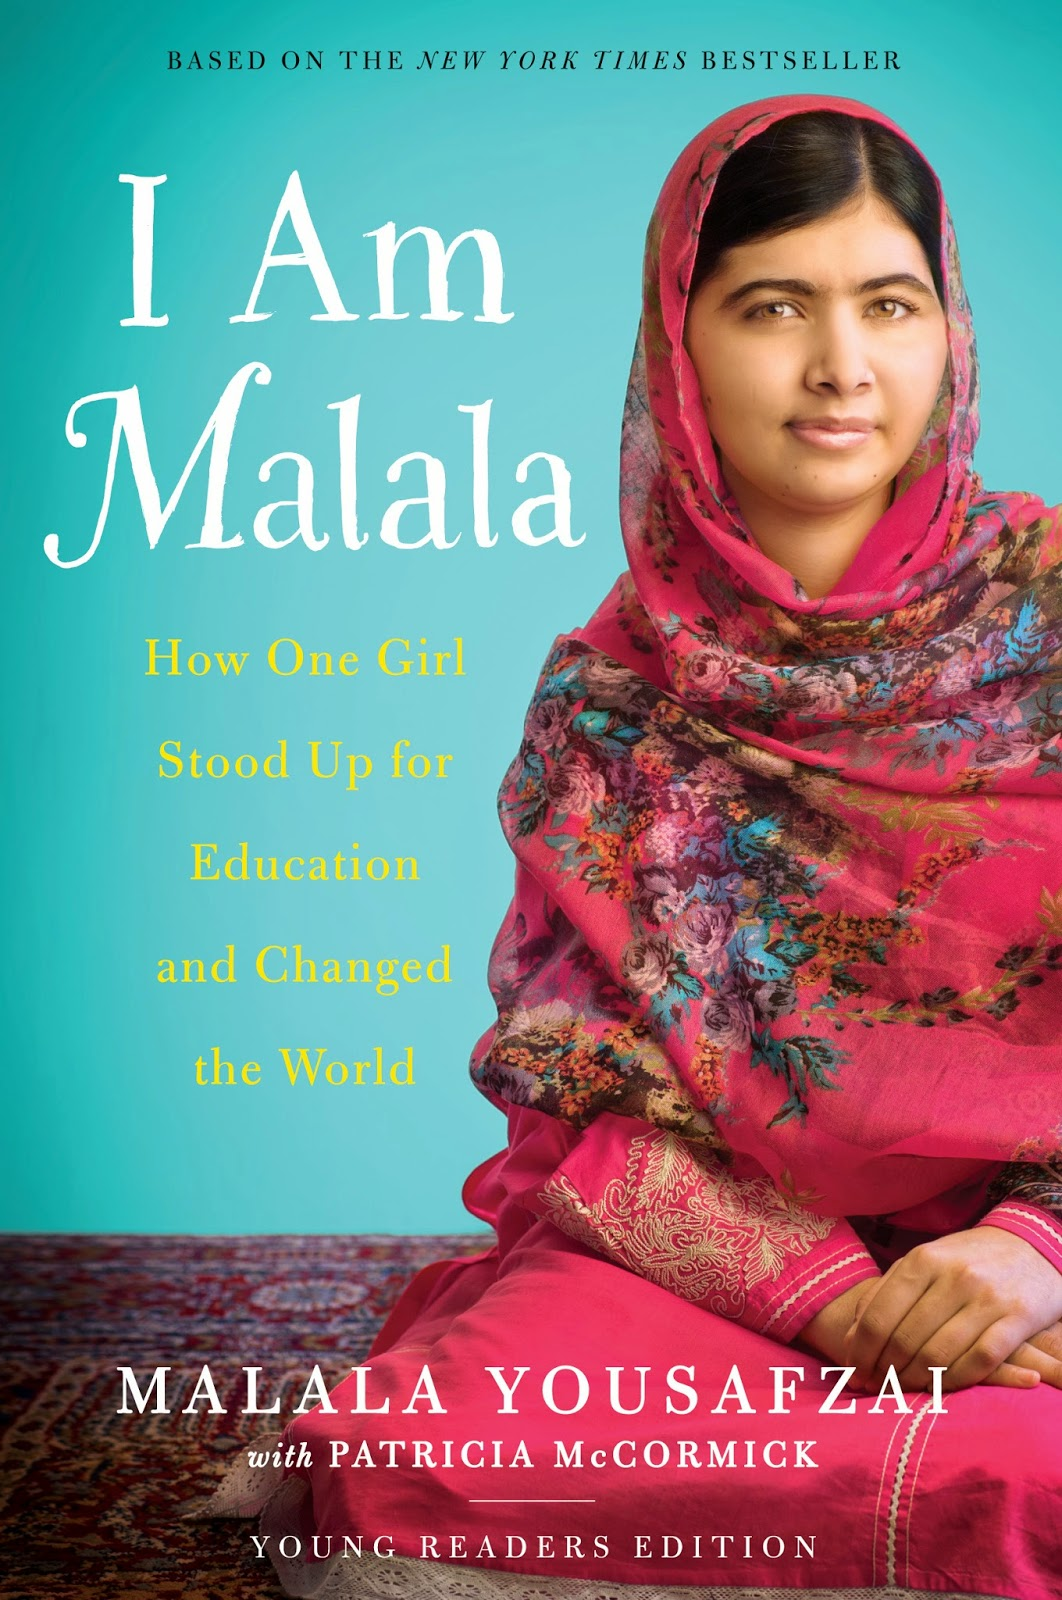 i am malala by malala yousafzai book cover